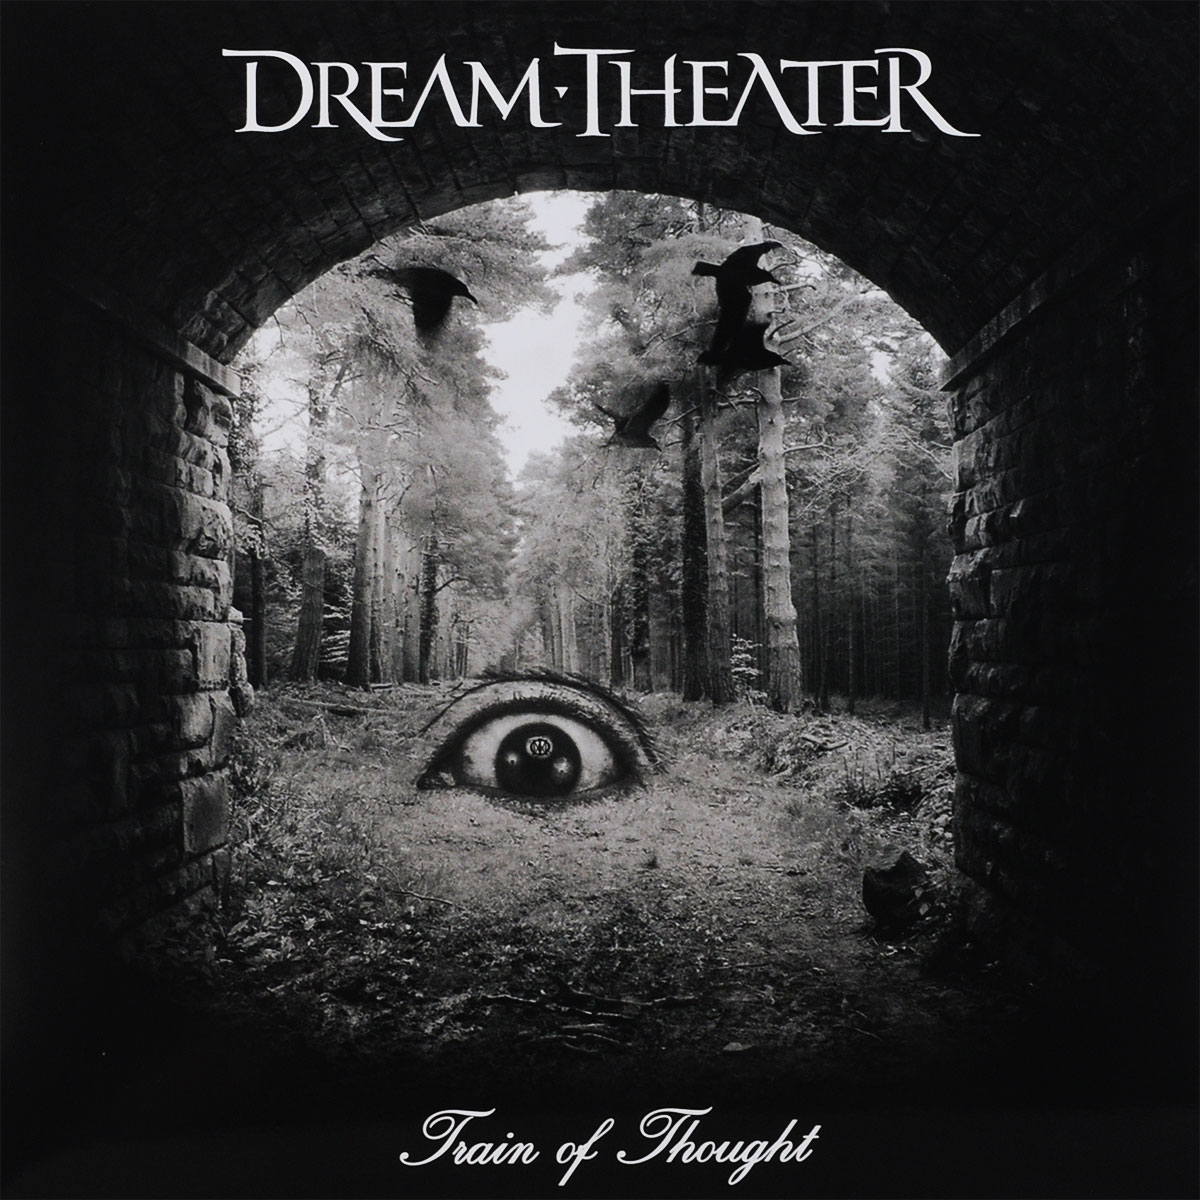 Dream Theater DREAM THEATER Train Of Thought LP 5 1 channel dts ac 3 home theater digital audio decoder black